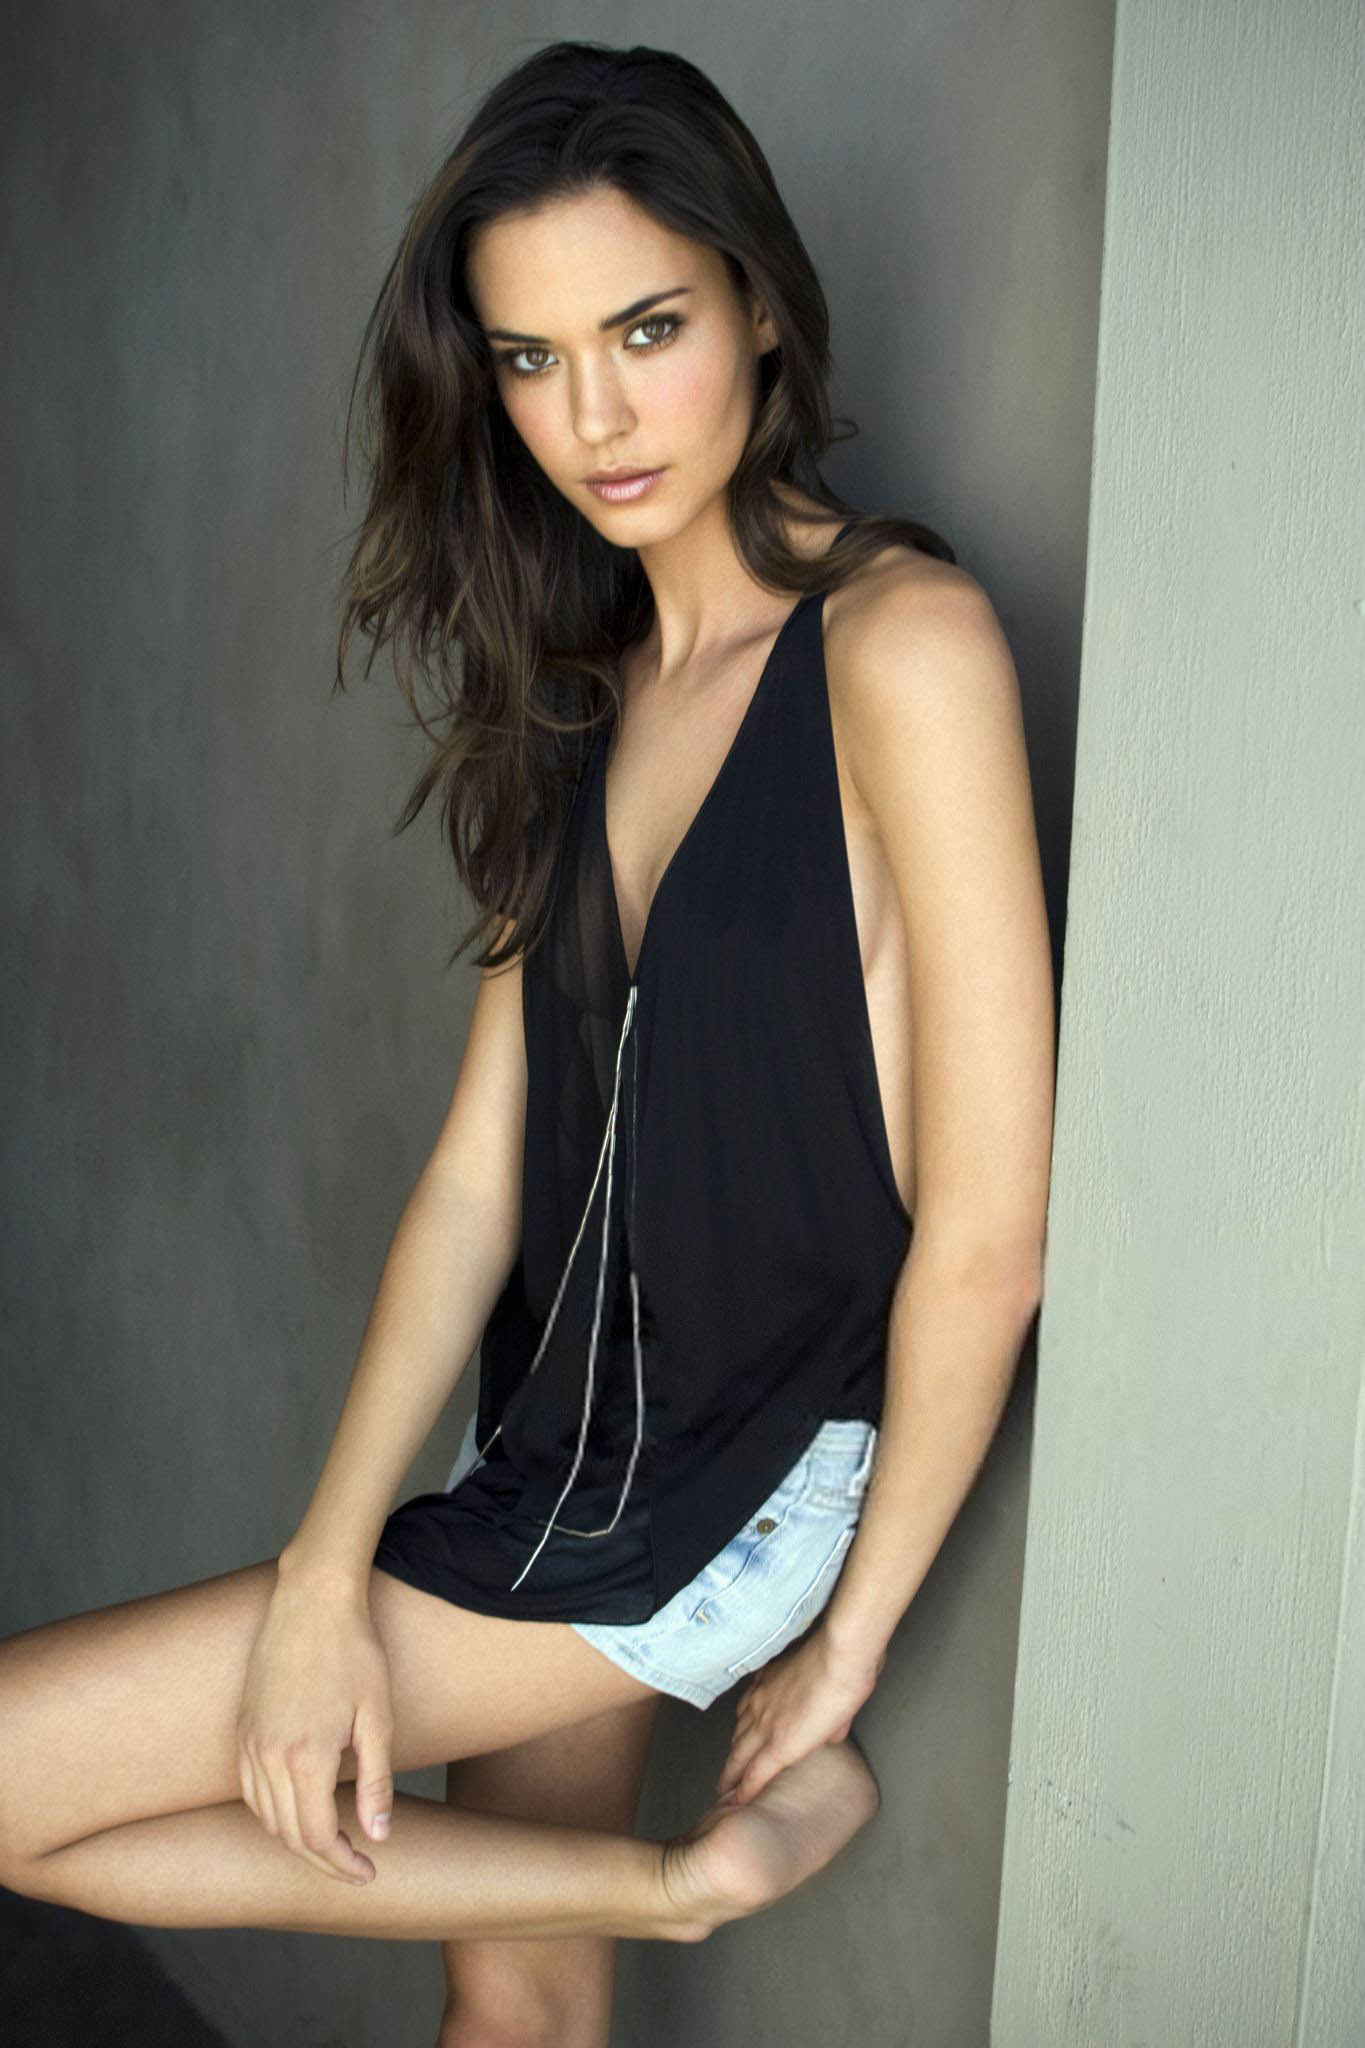 Hot Odette Annable nude (42 photo), Ass, Leaked, Instagram, underwear 2019